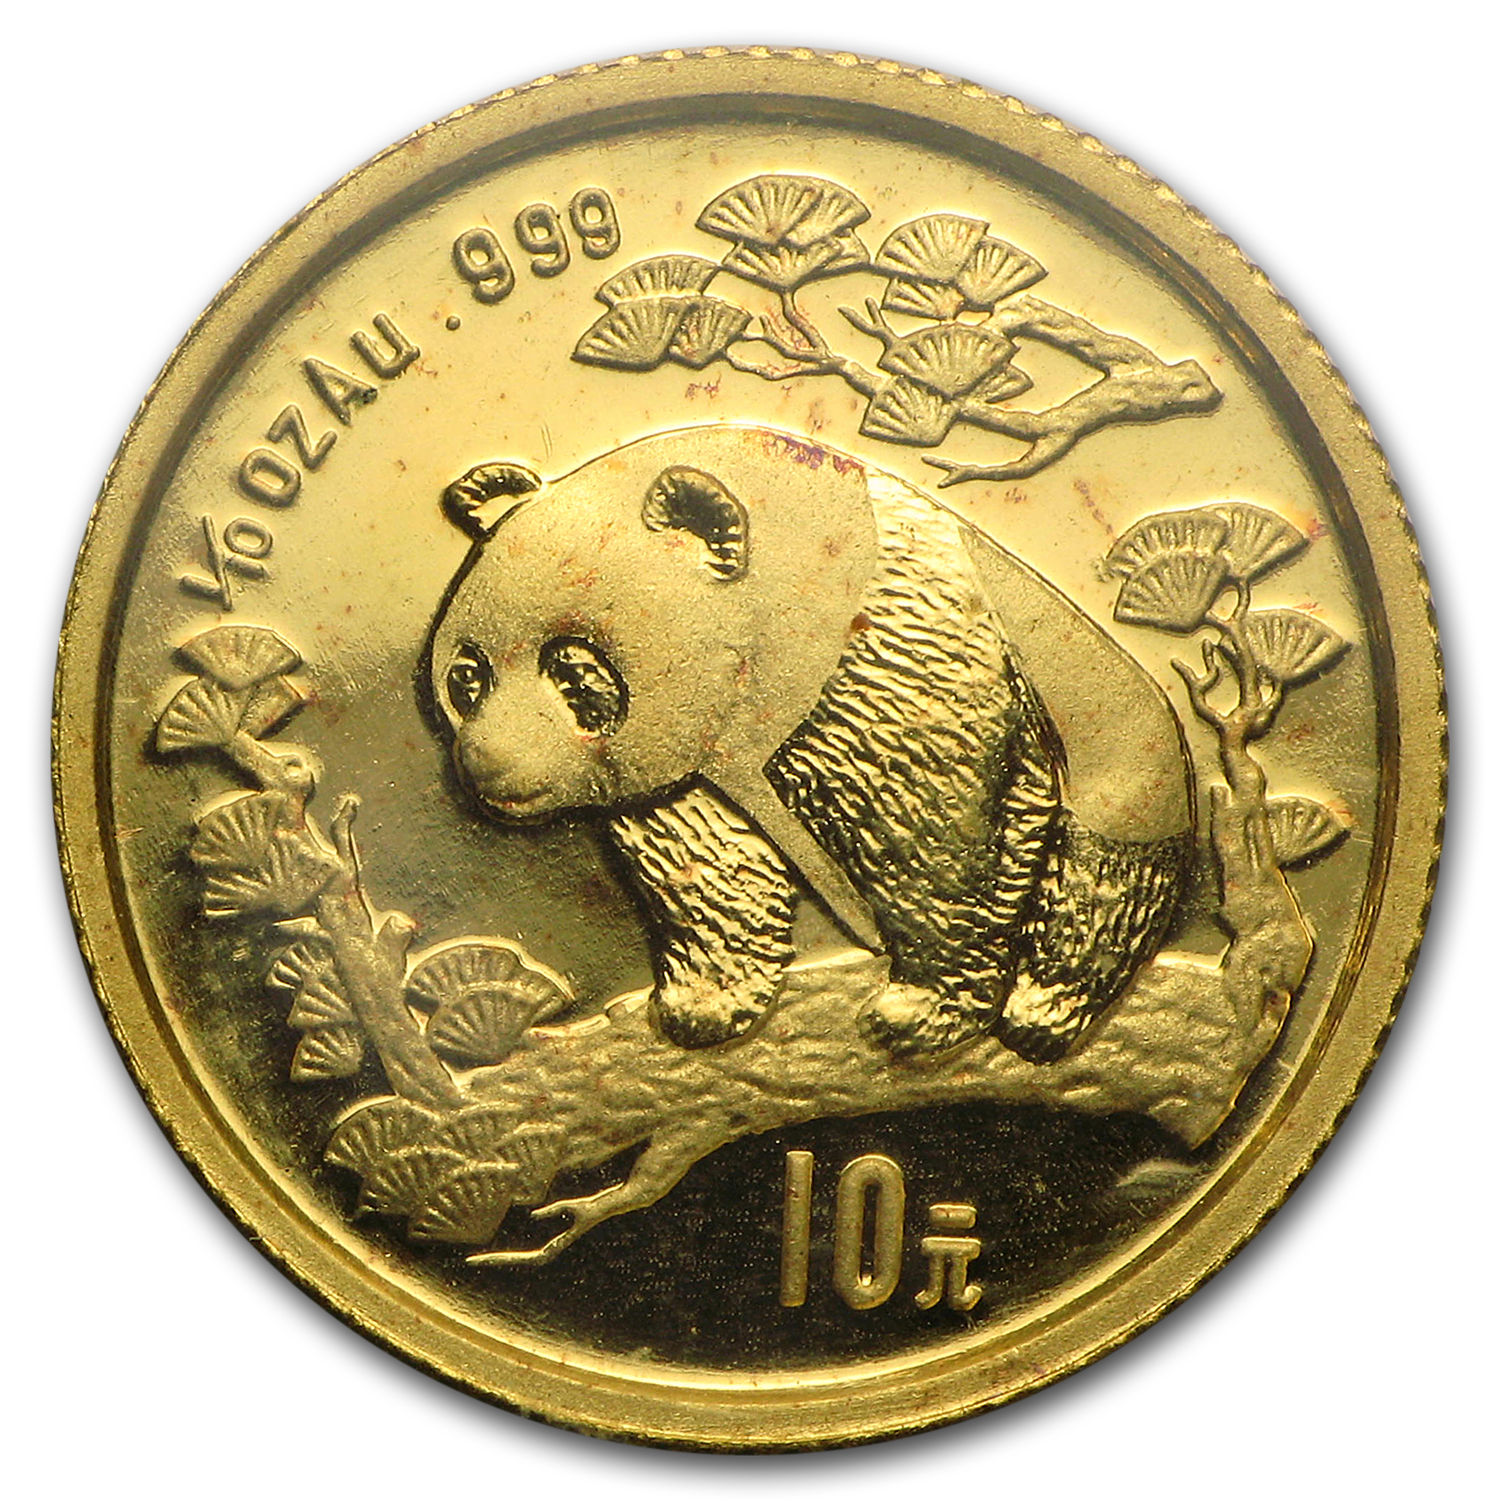 1997 1/10 oz Gold Chinese Panda Small Date BU (Sealed)